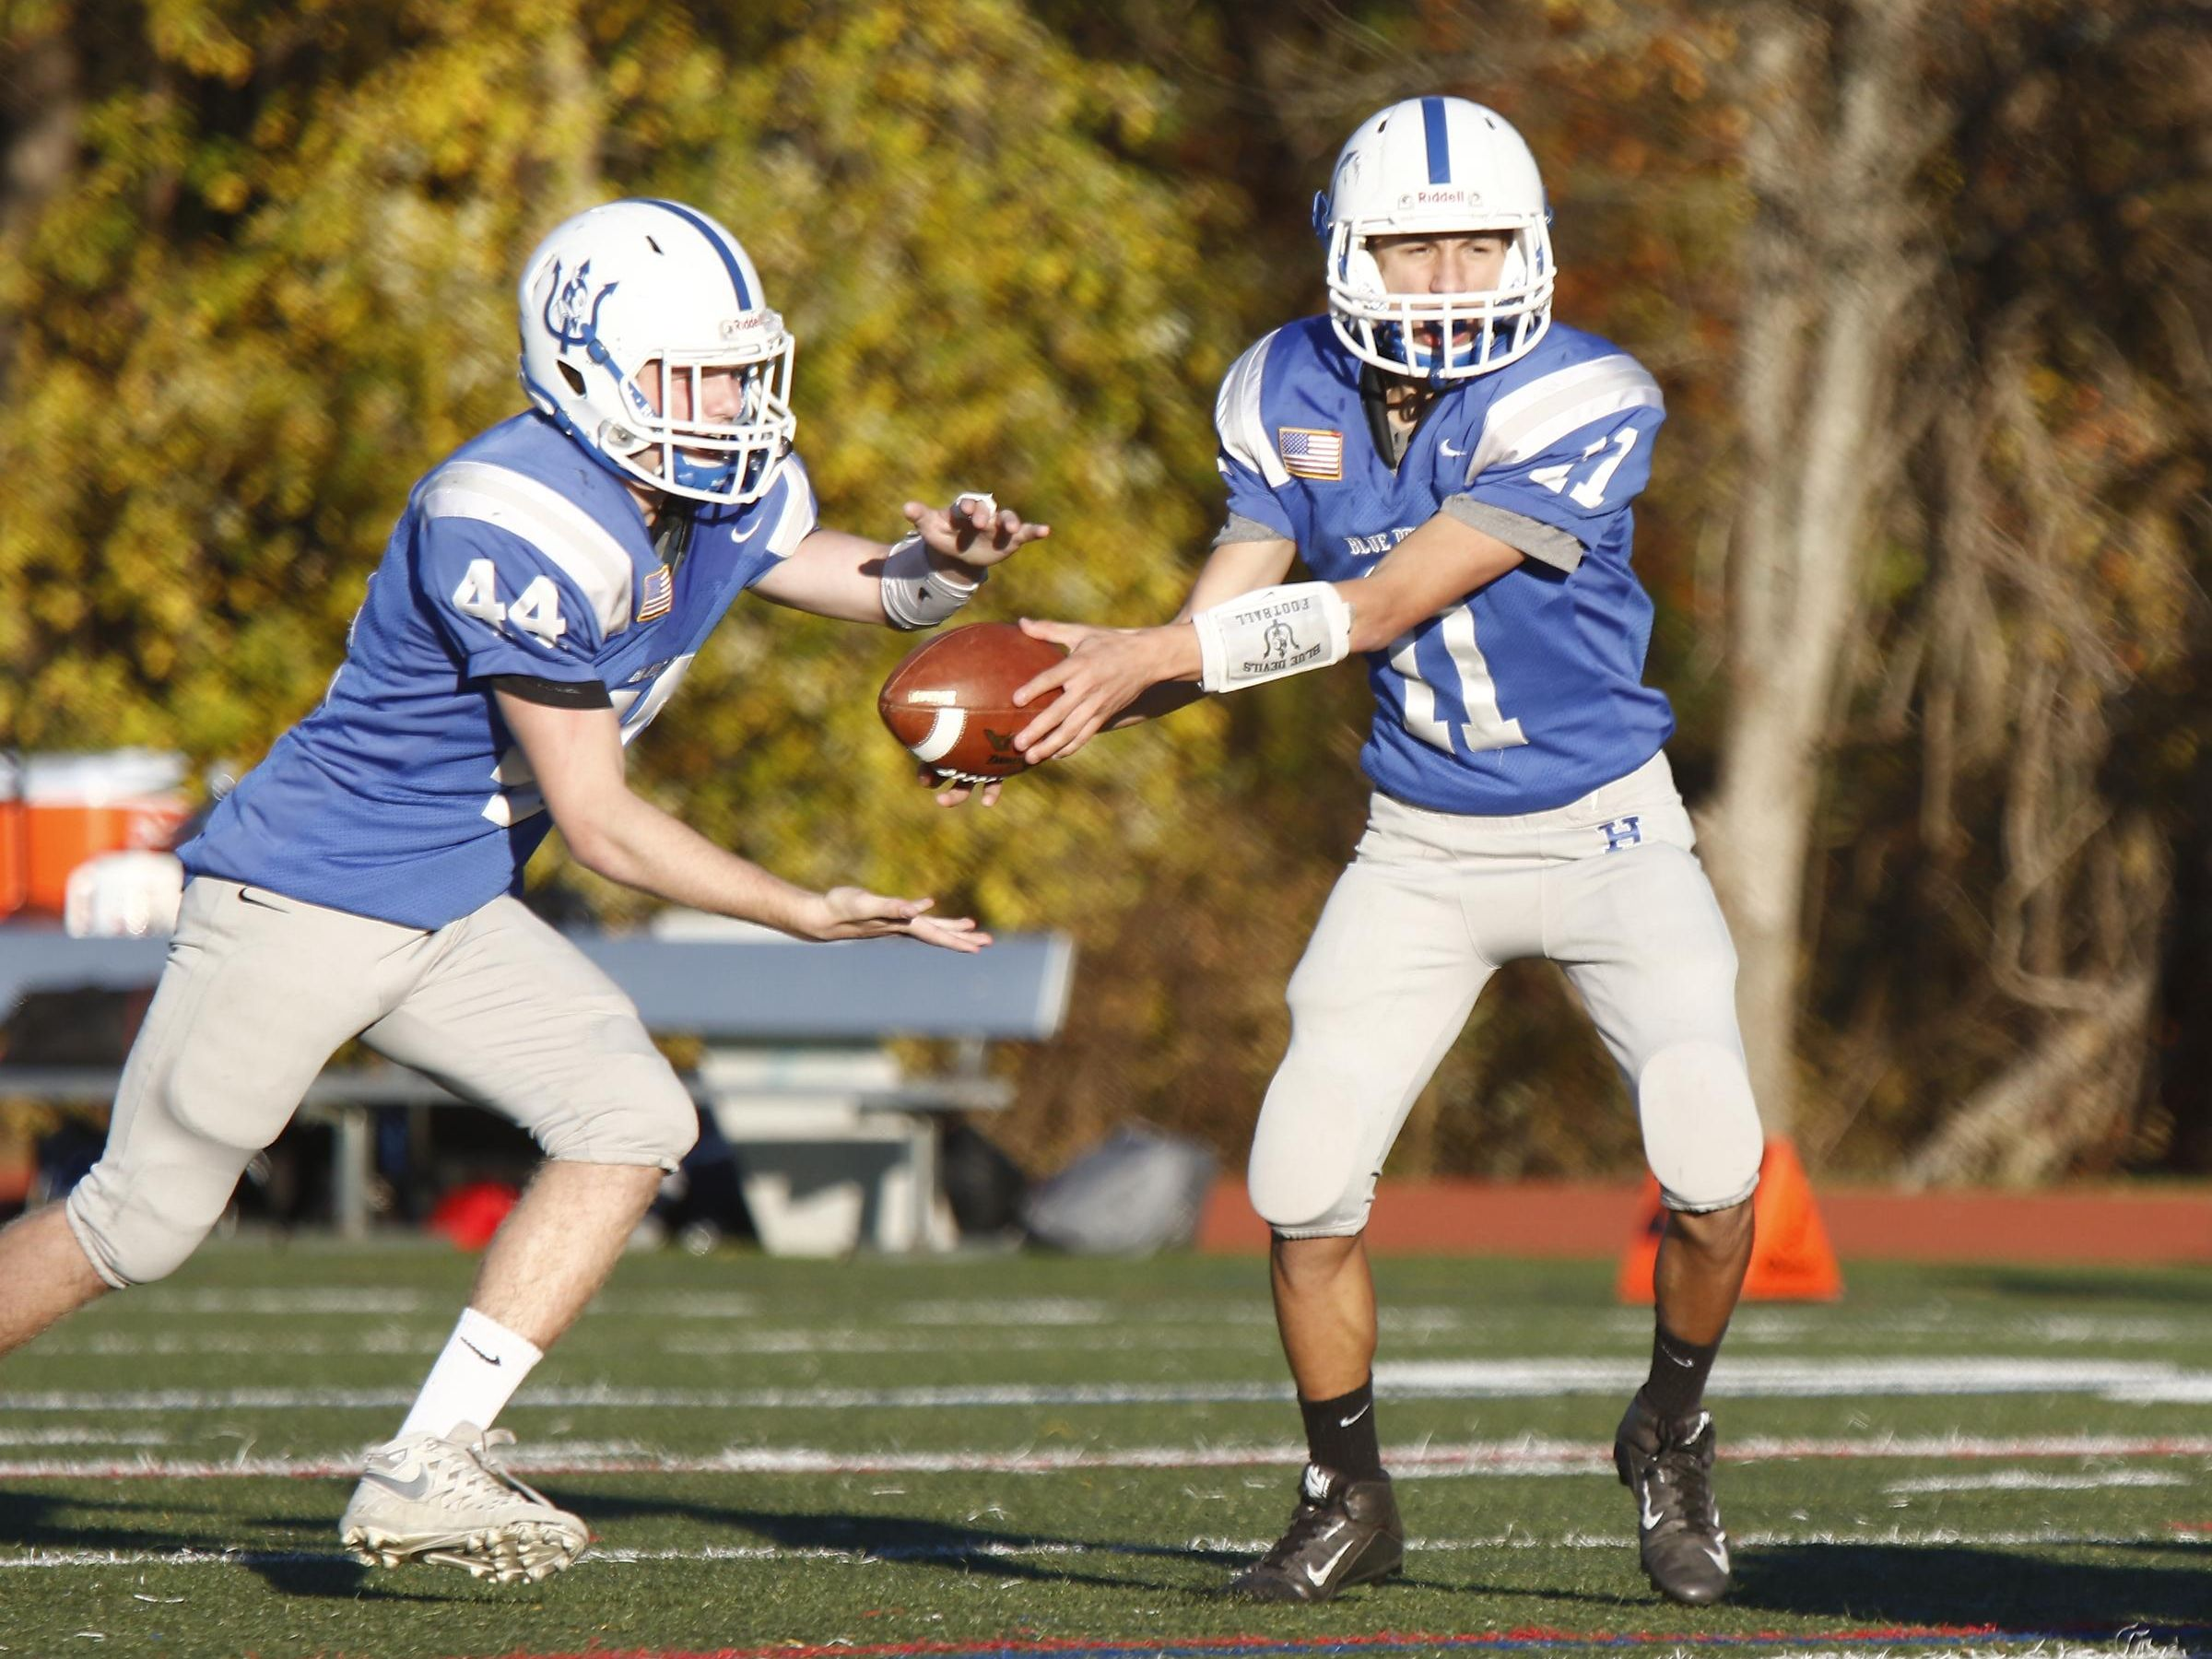 Haldane's Luke Junjulas (11) hands off to Sam Giachinta (44) during their 26-6 win over Tuckahoe in the Section 1 Class D championship football game at Mahopac High School on Friday, November 4, 2016.